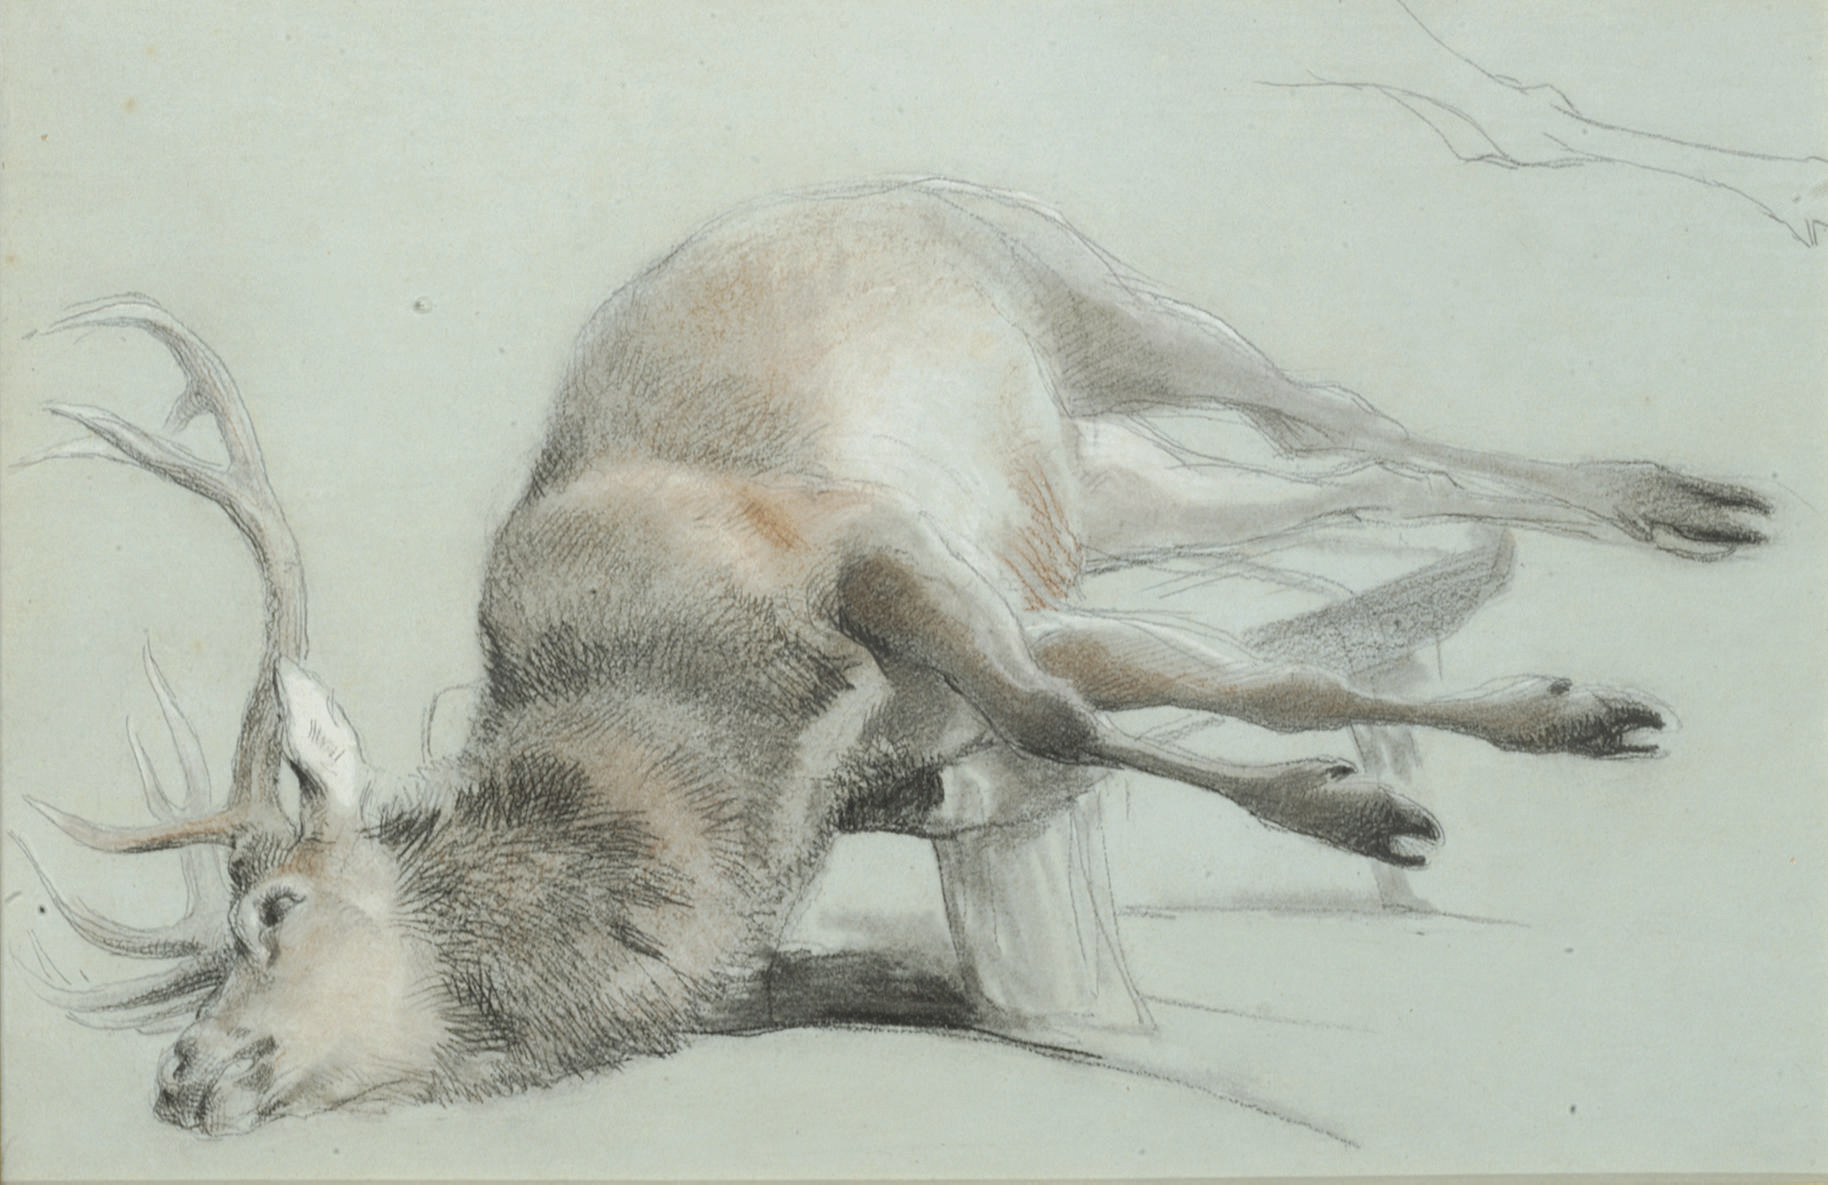 Study of a stag with a subsidiary study of the right hind leg